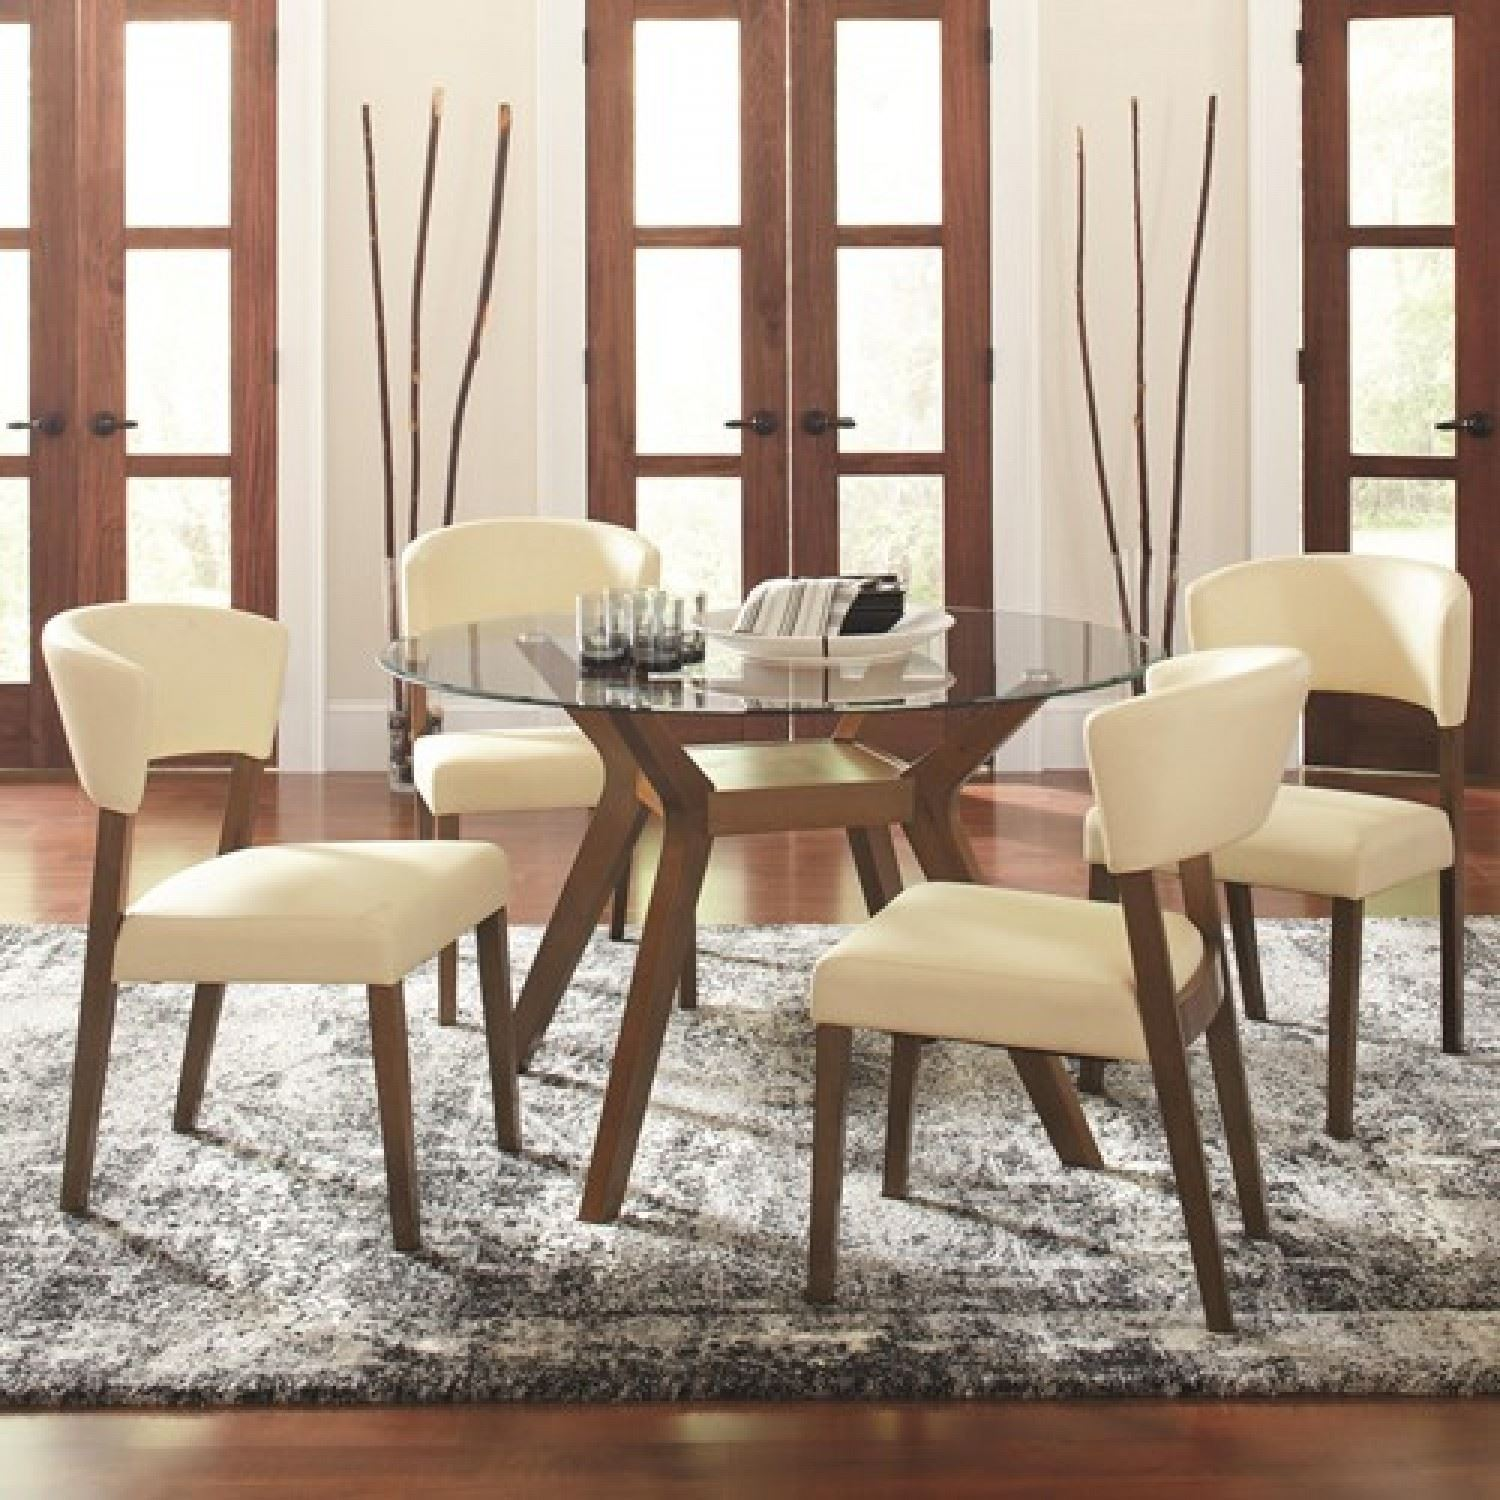 Terrific Normandy Dining Table Base Round Squirreltailoven Fun Painted Chair Ideas Images Squirreltailovenorg